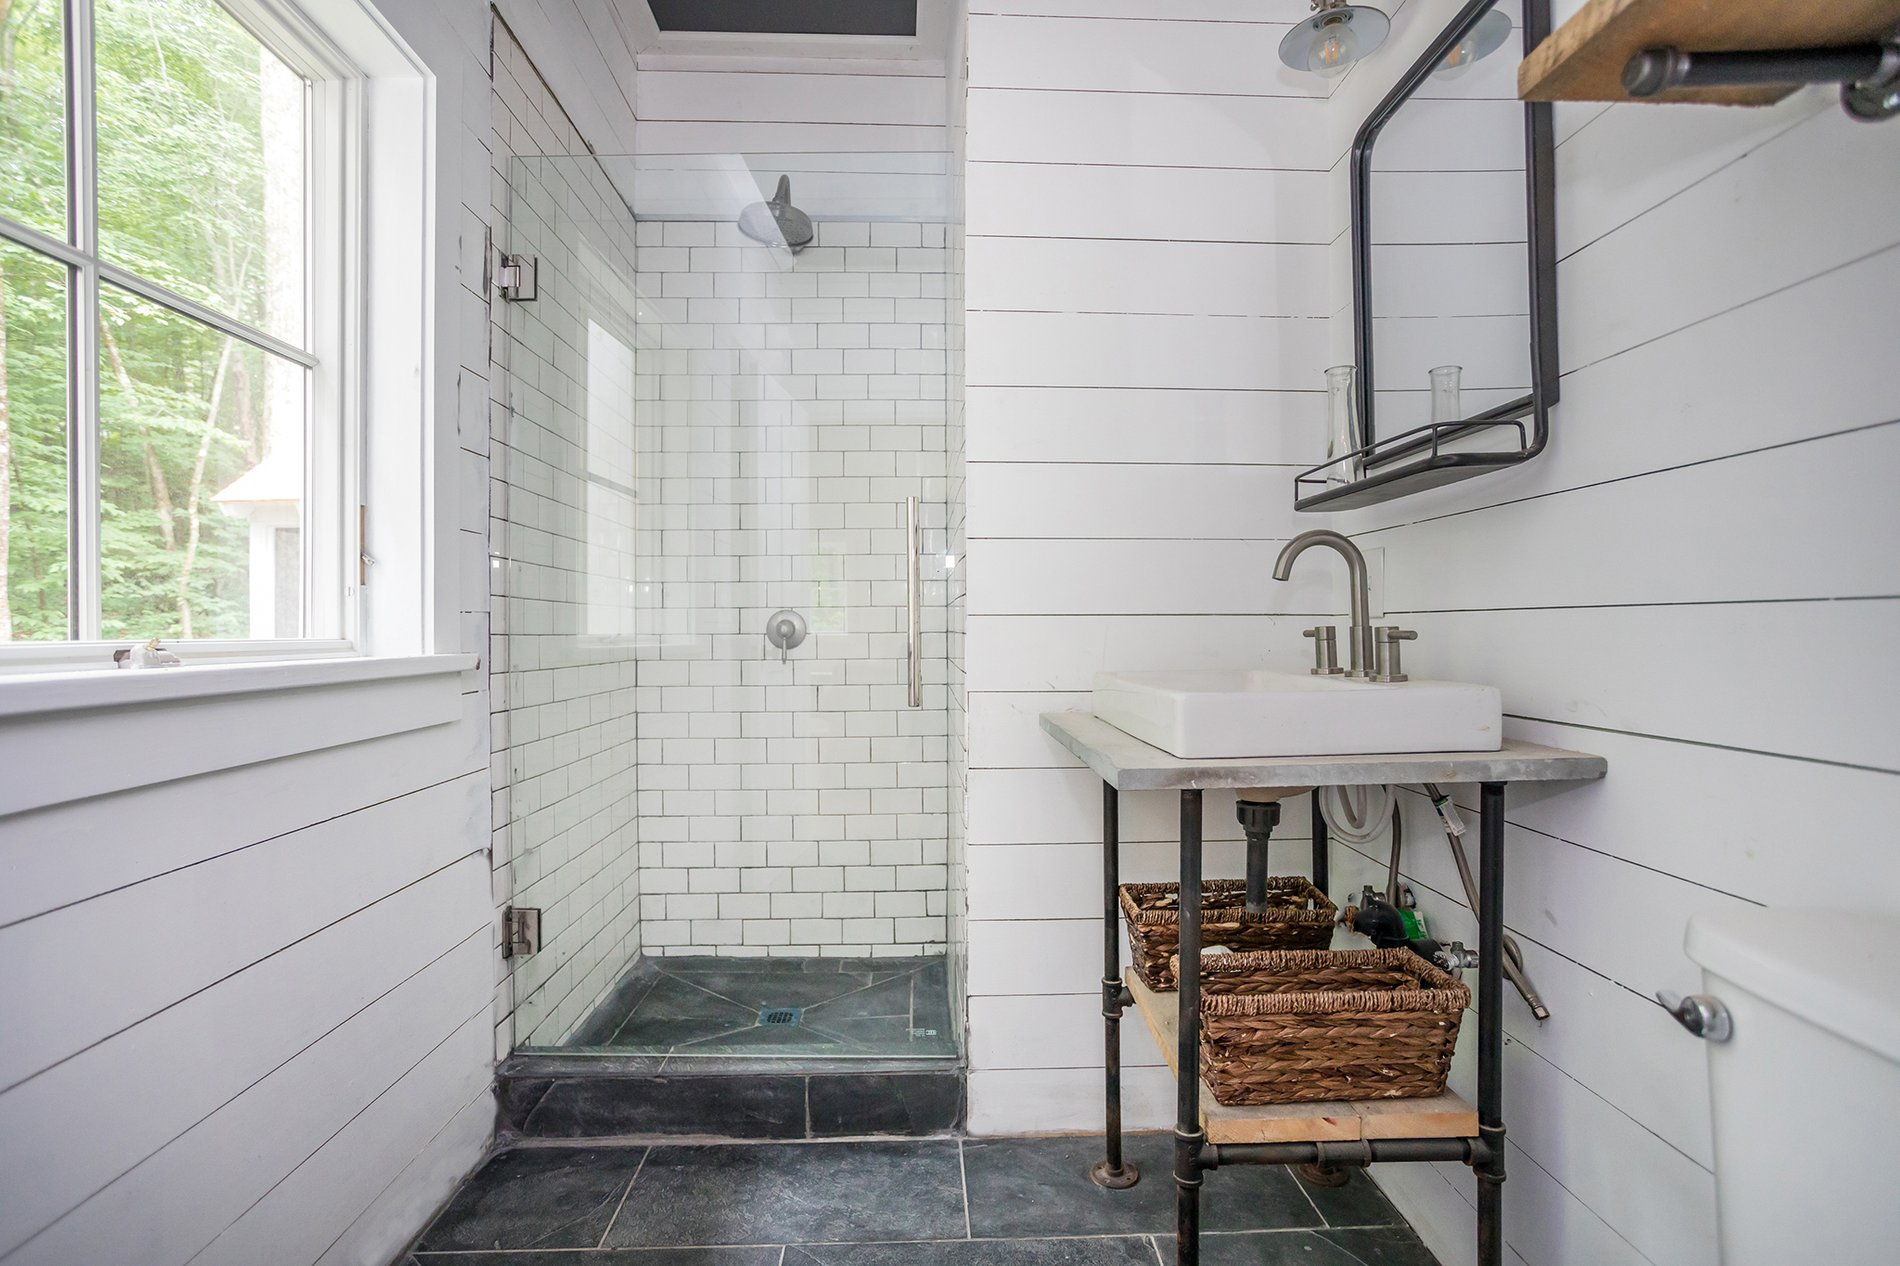 Country bathroom with white shiplap and subway shower tiles. Real wood shelving and pipe frames.